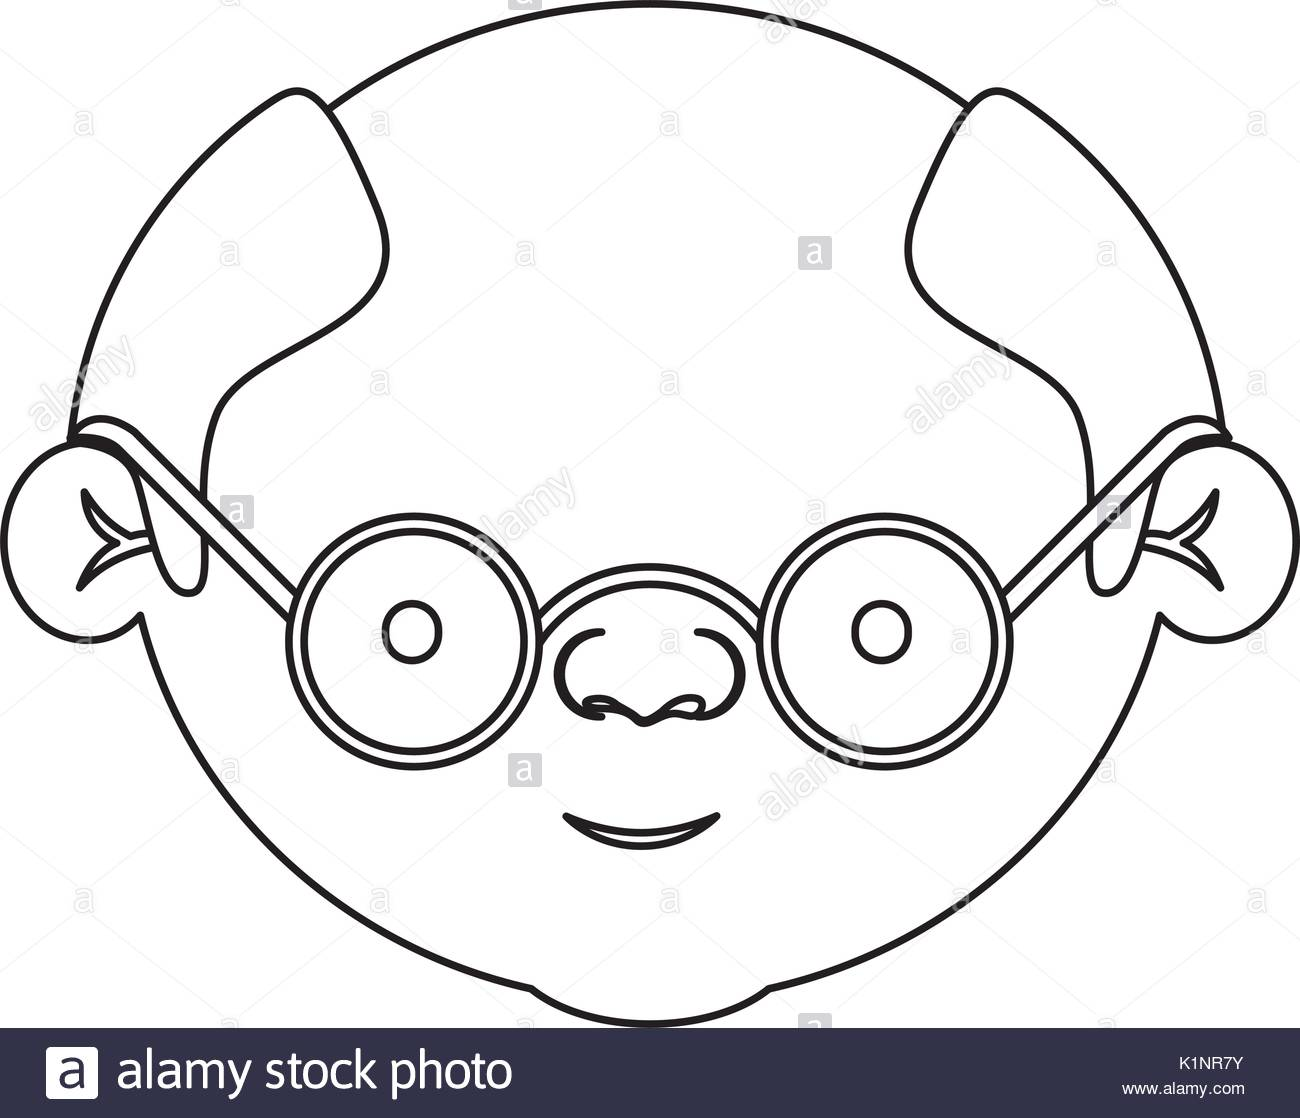 1300x1118 Sketch Silhouette Of Face Bald Elderly Man With Glasses Stock